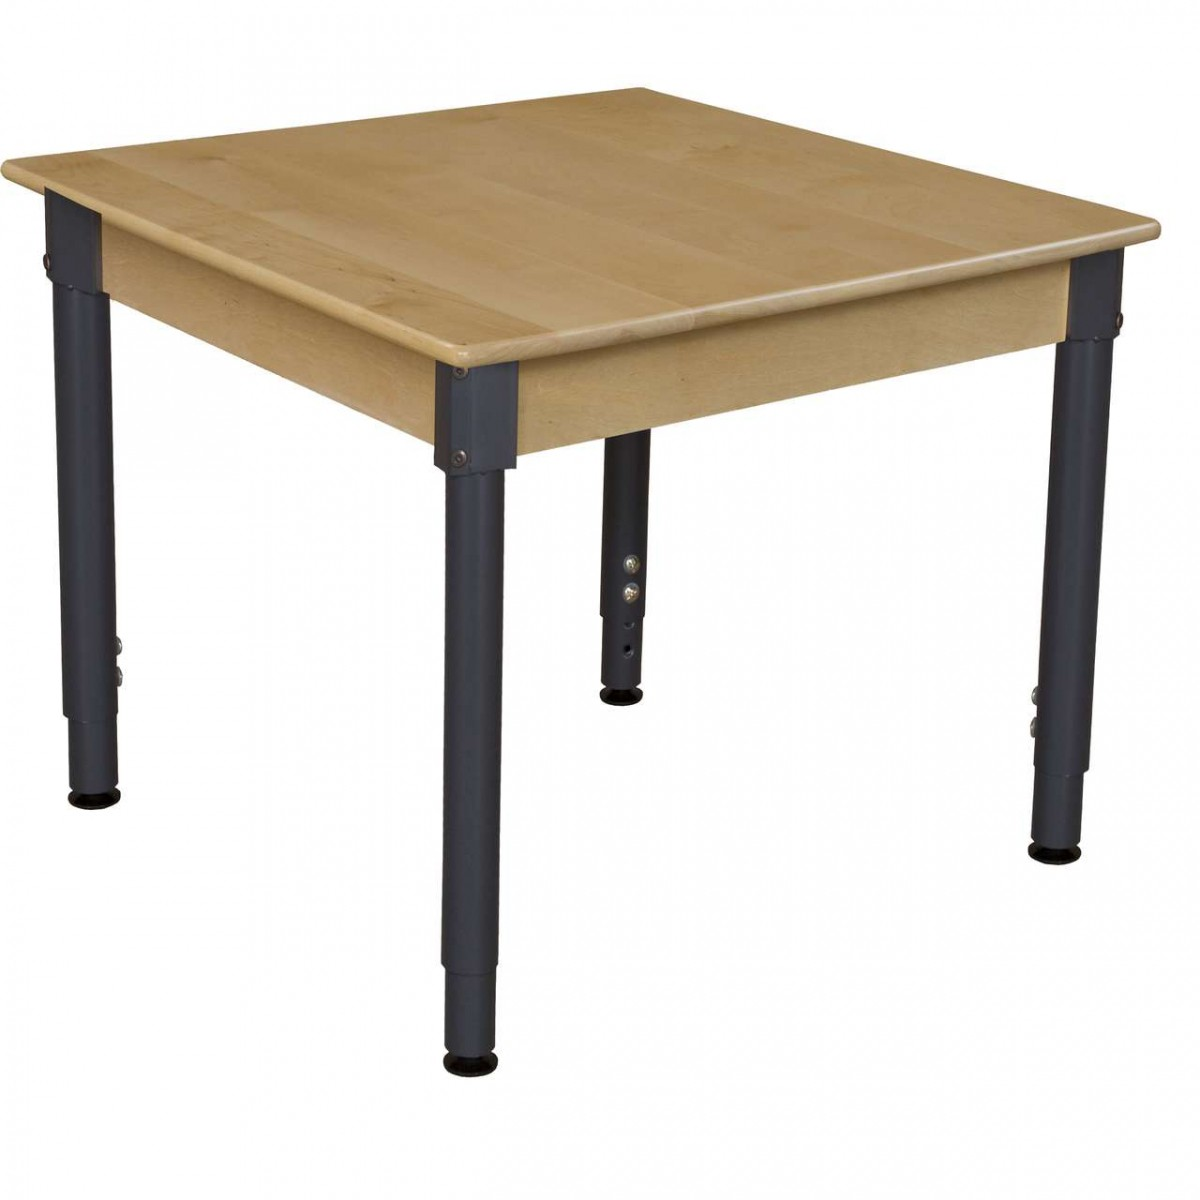 """Wood Designs 30"""" Square Hardwood Table With Adjustable"""